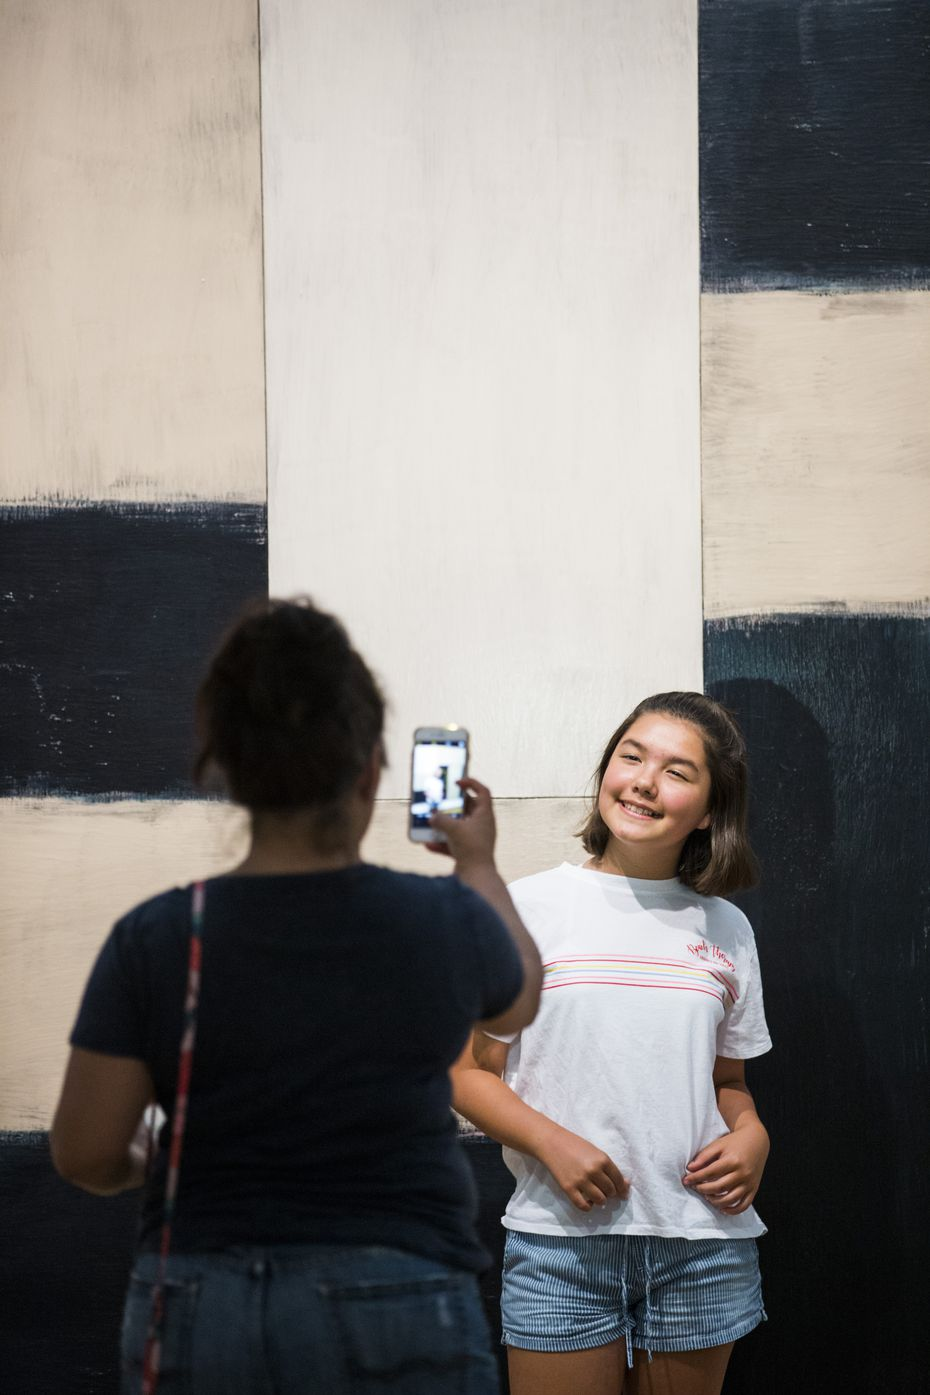 """Hermalinda Idrogo, left, takes a photo of Eva Idrogo, 12, in front of """"Catherine, 1993"""" by Sean Scully at The Modern Art Museum of Fort Worth."""